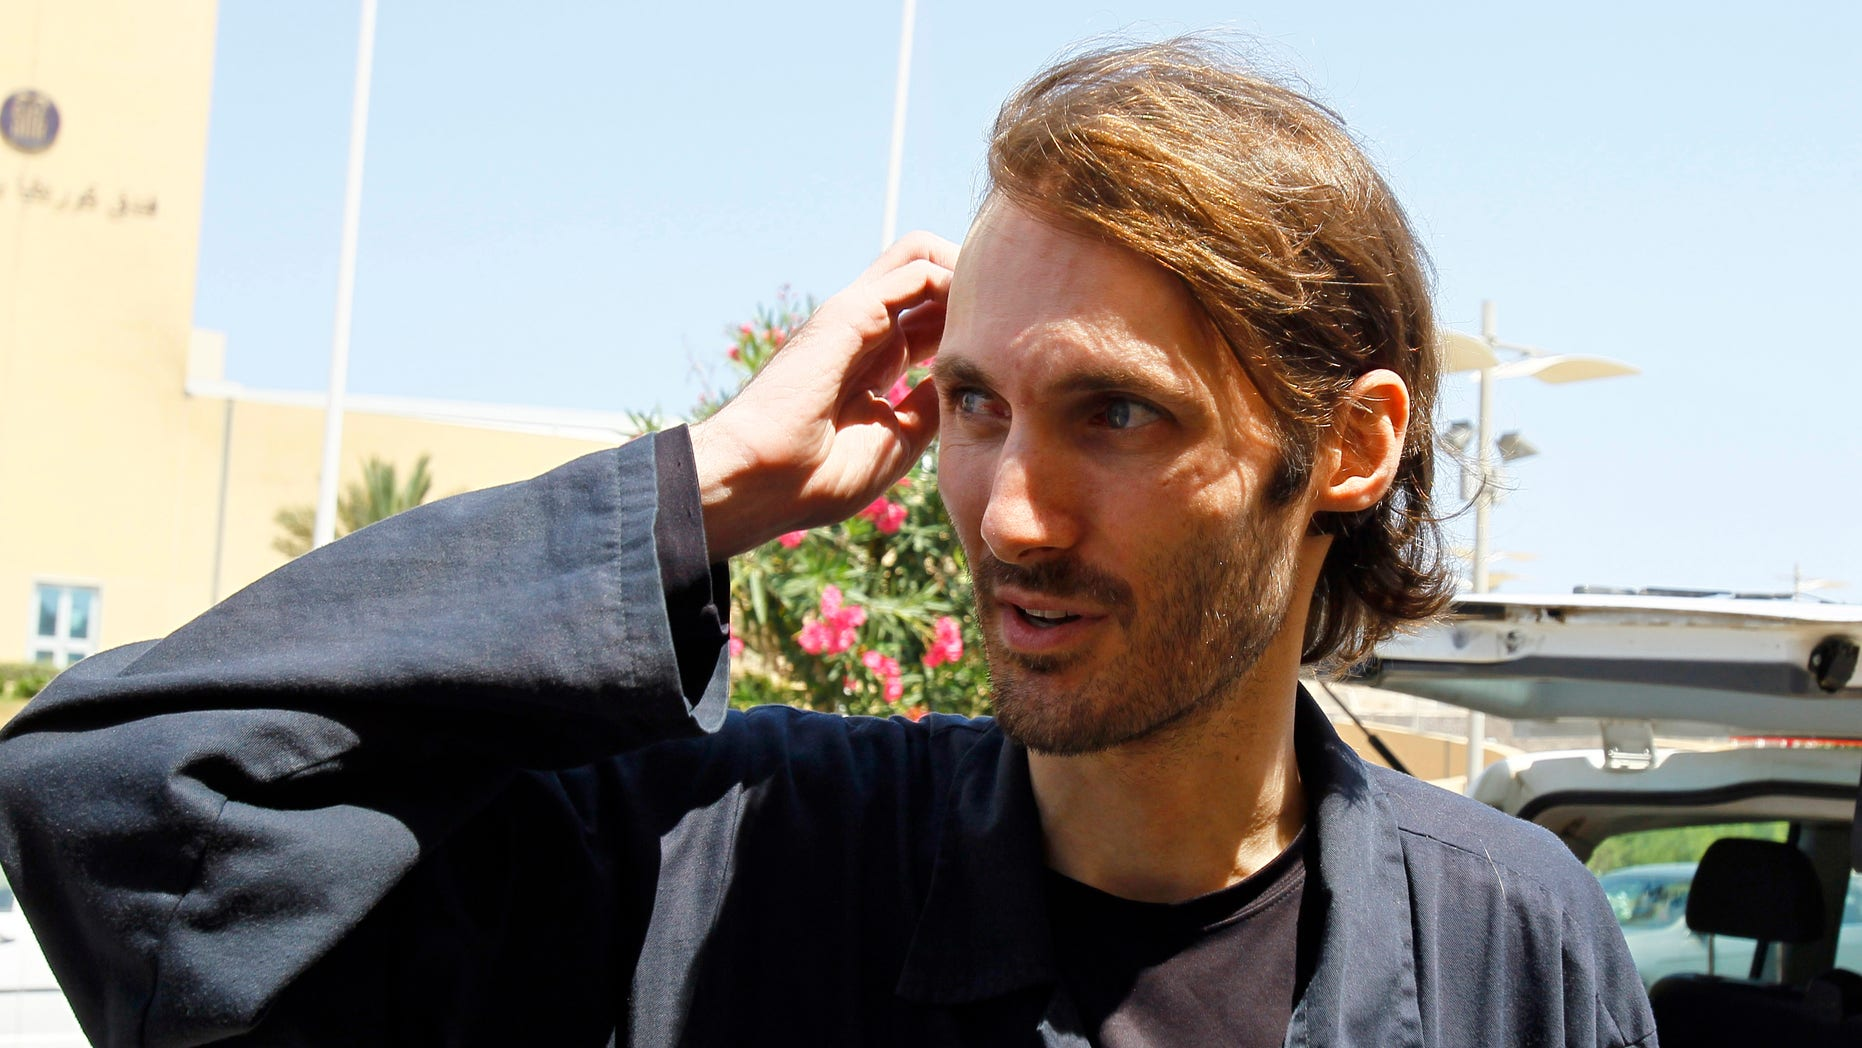 American writer and filmmaker Matthew VanDyke , from Baltimore, released from Abu Salim prison after spending 6 months imprisoned, is seen in front of the Corinthia Hotel in Tripoli, Libya, Saturday, Aug. 27, 2011.